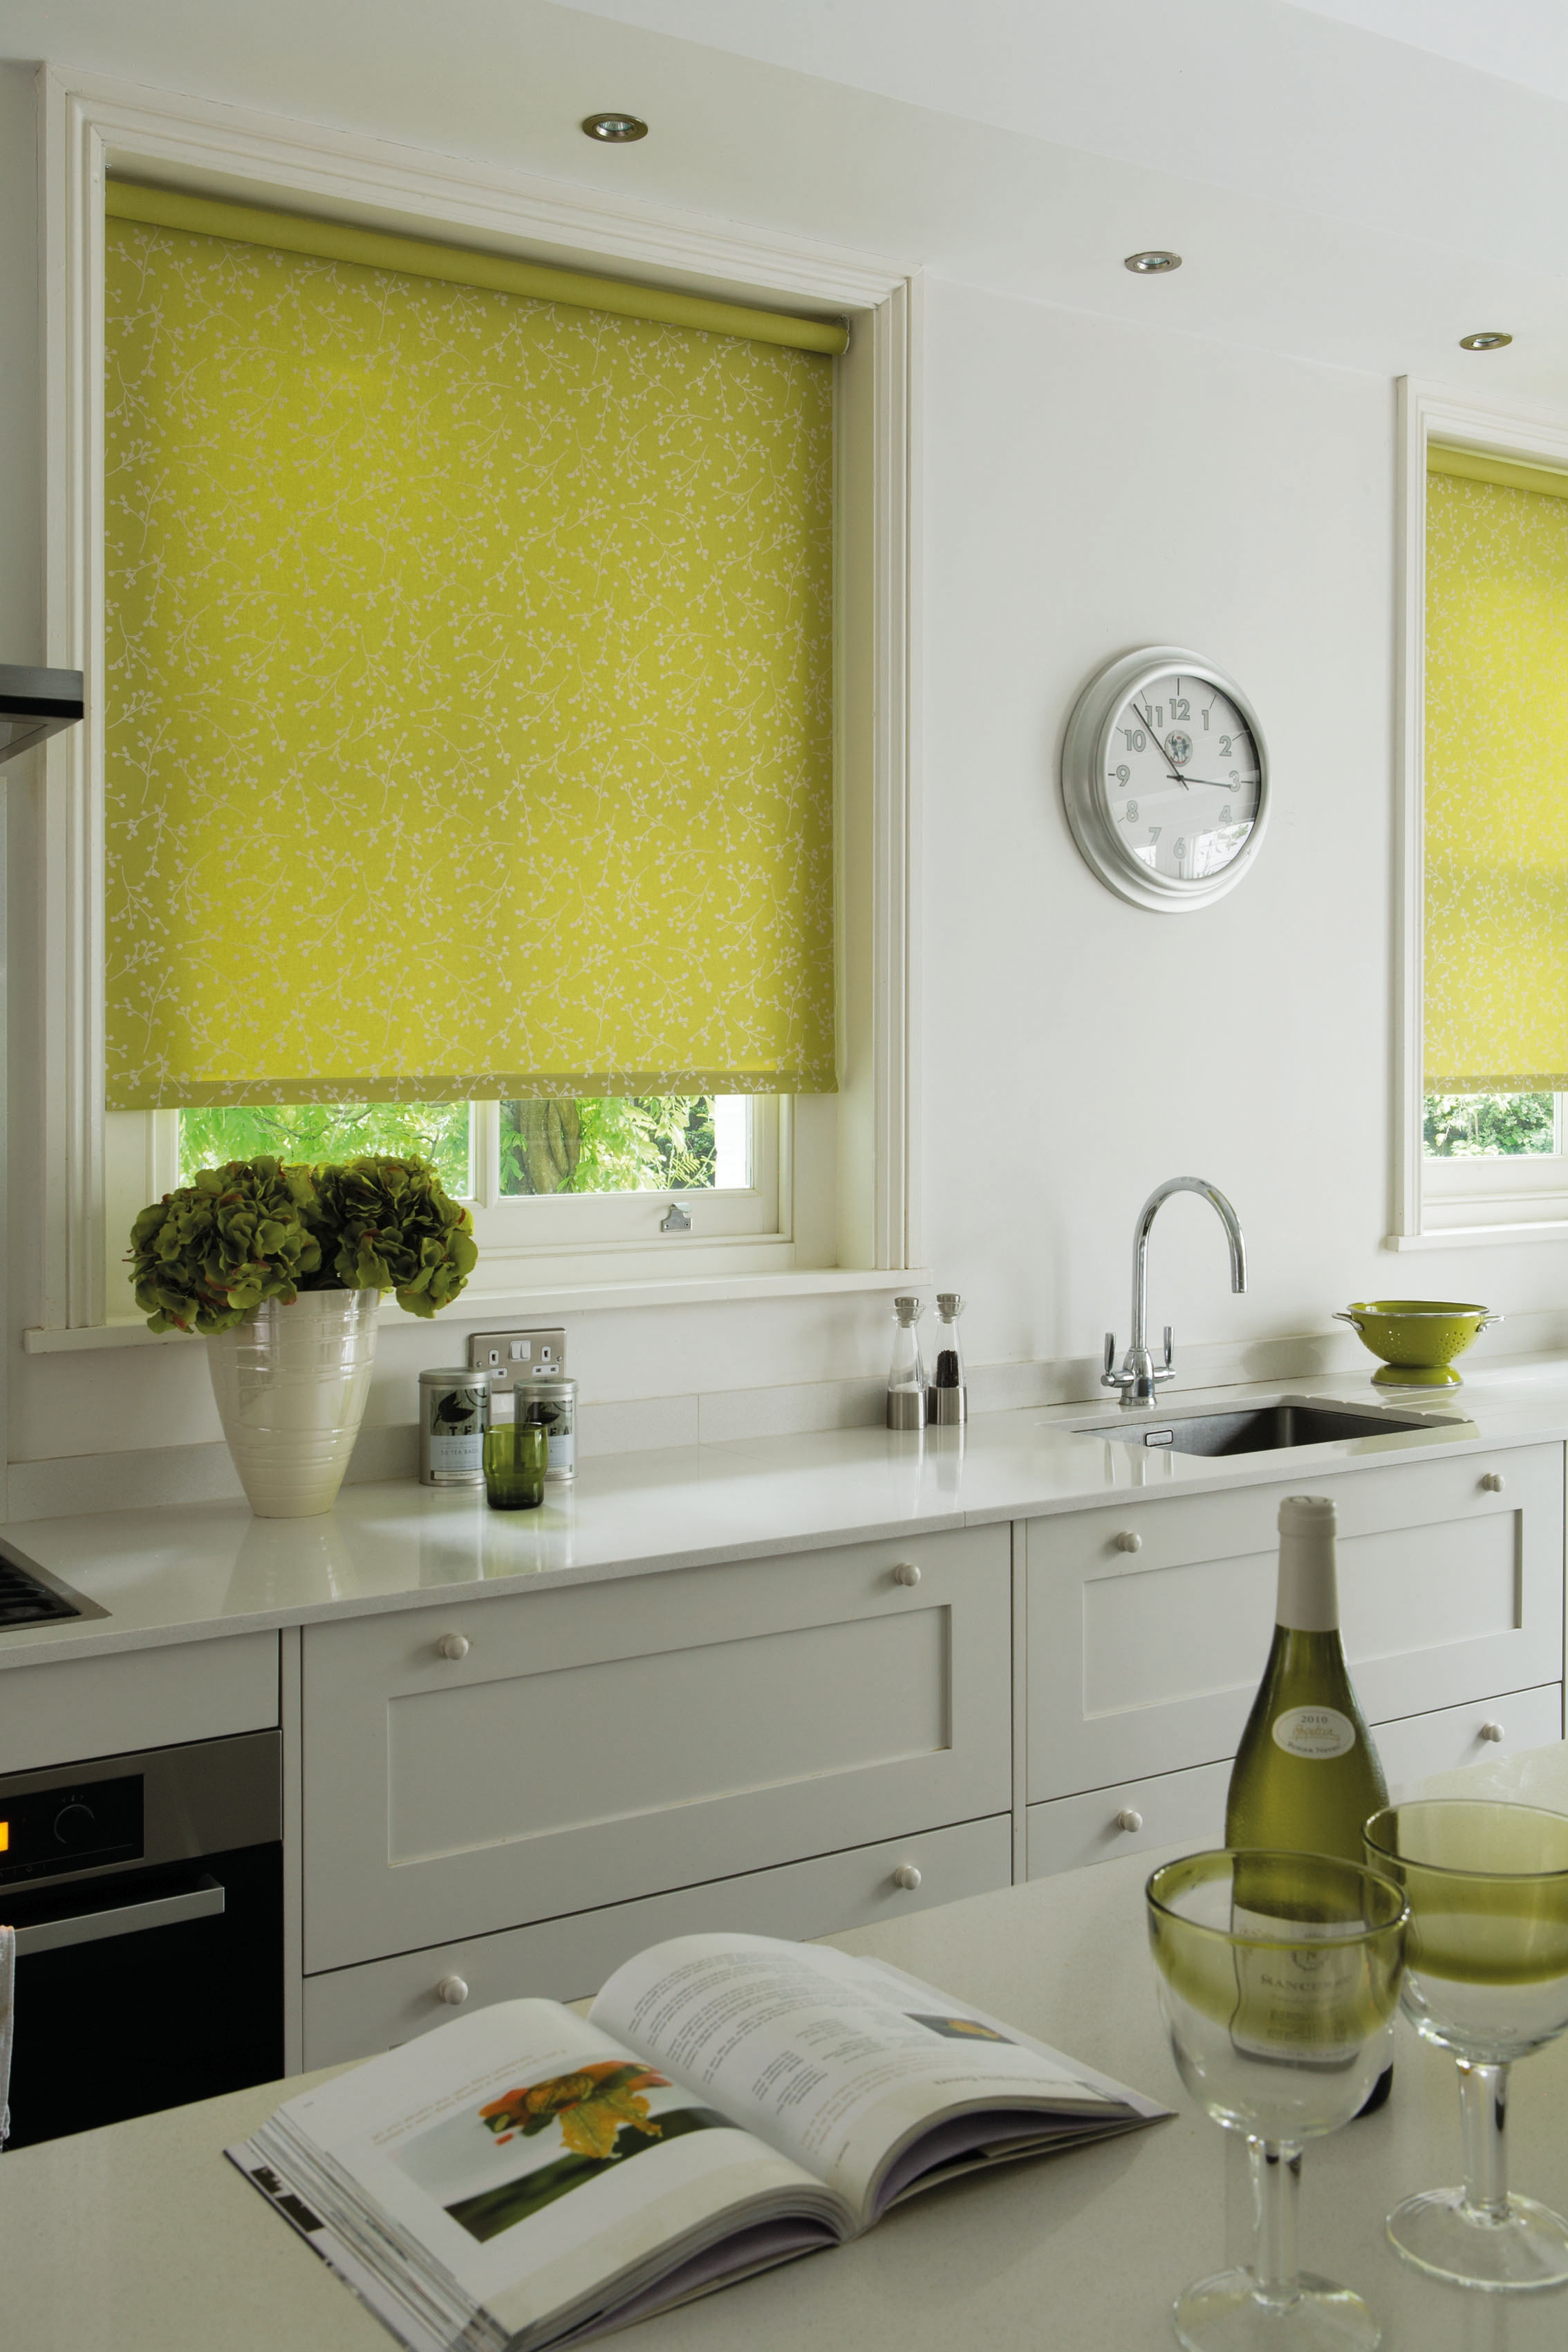 Cheapest Blinds Uk Ltd Lime Green Roller Blind Throughout Green Roller Blinds (Image 4 of 15)